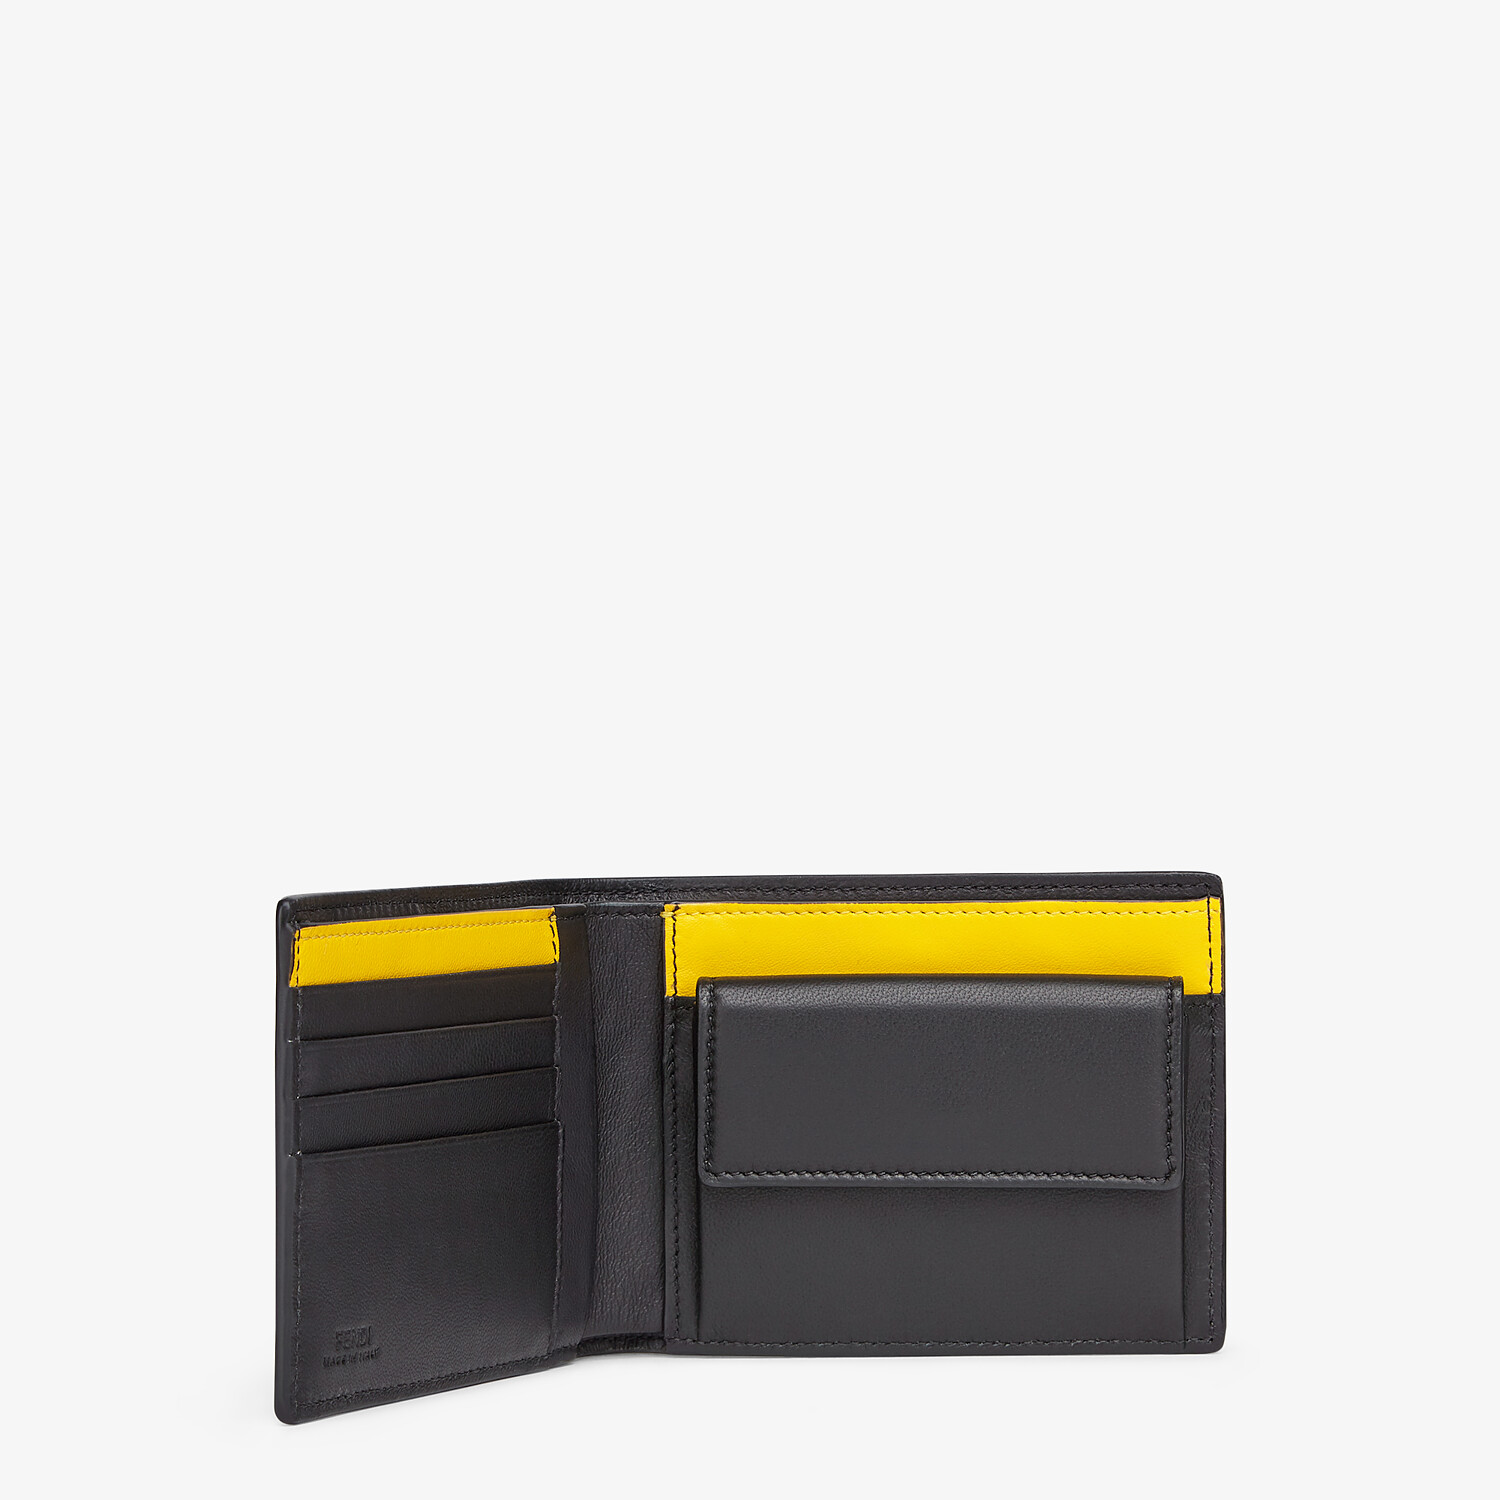 FENDI WALLET - Black nappa leather bi-fold wallet - view 3 detail